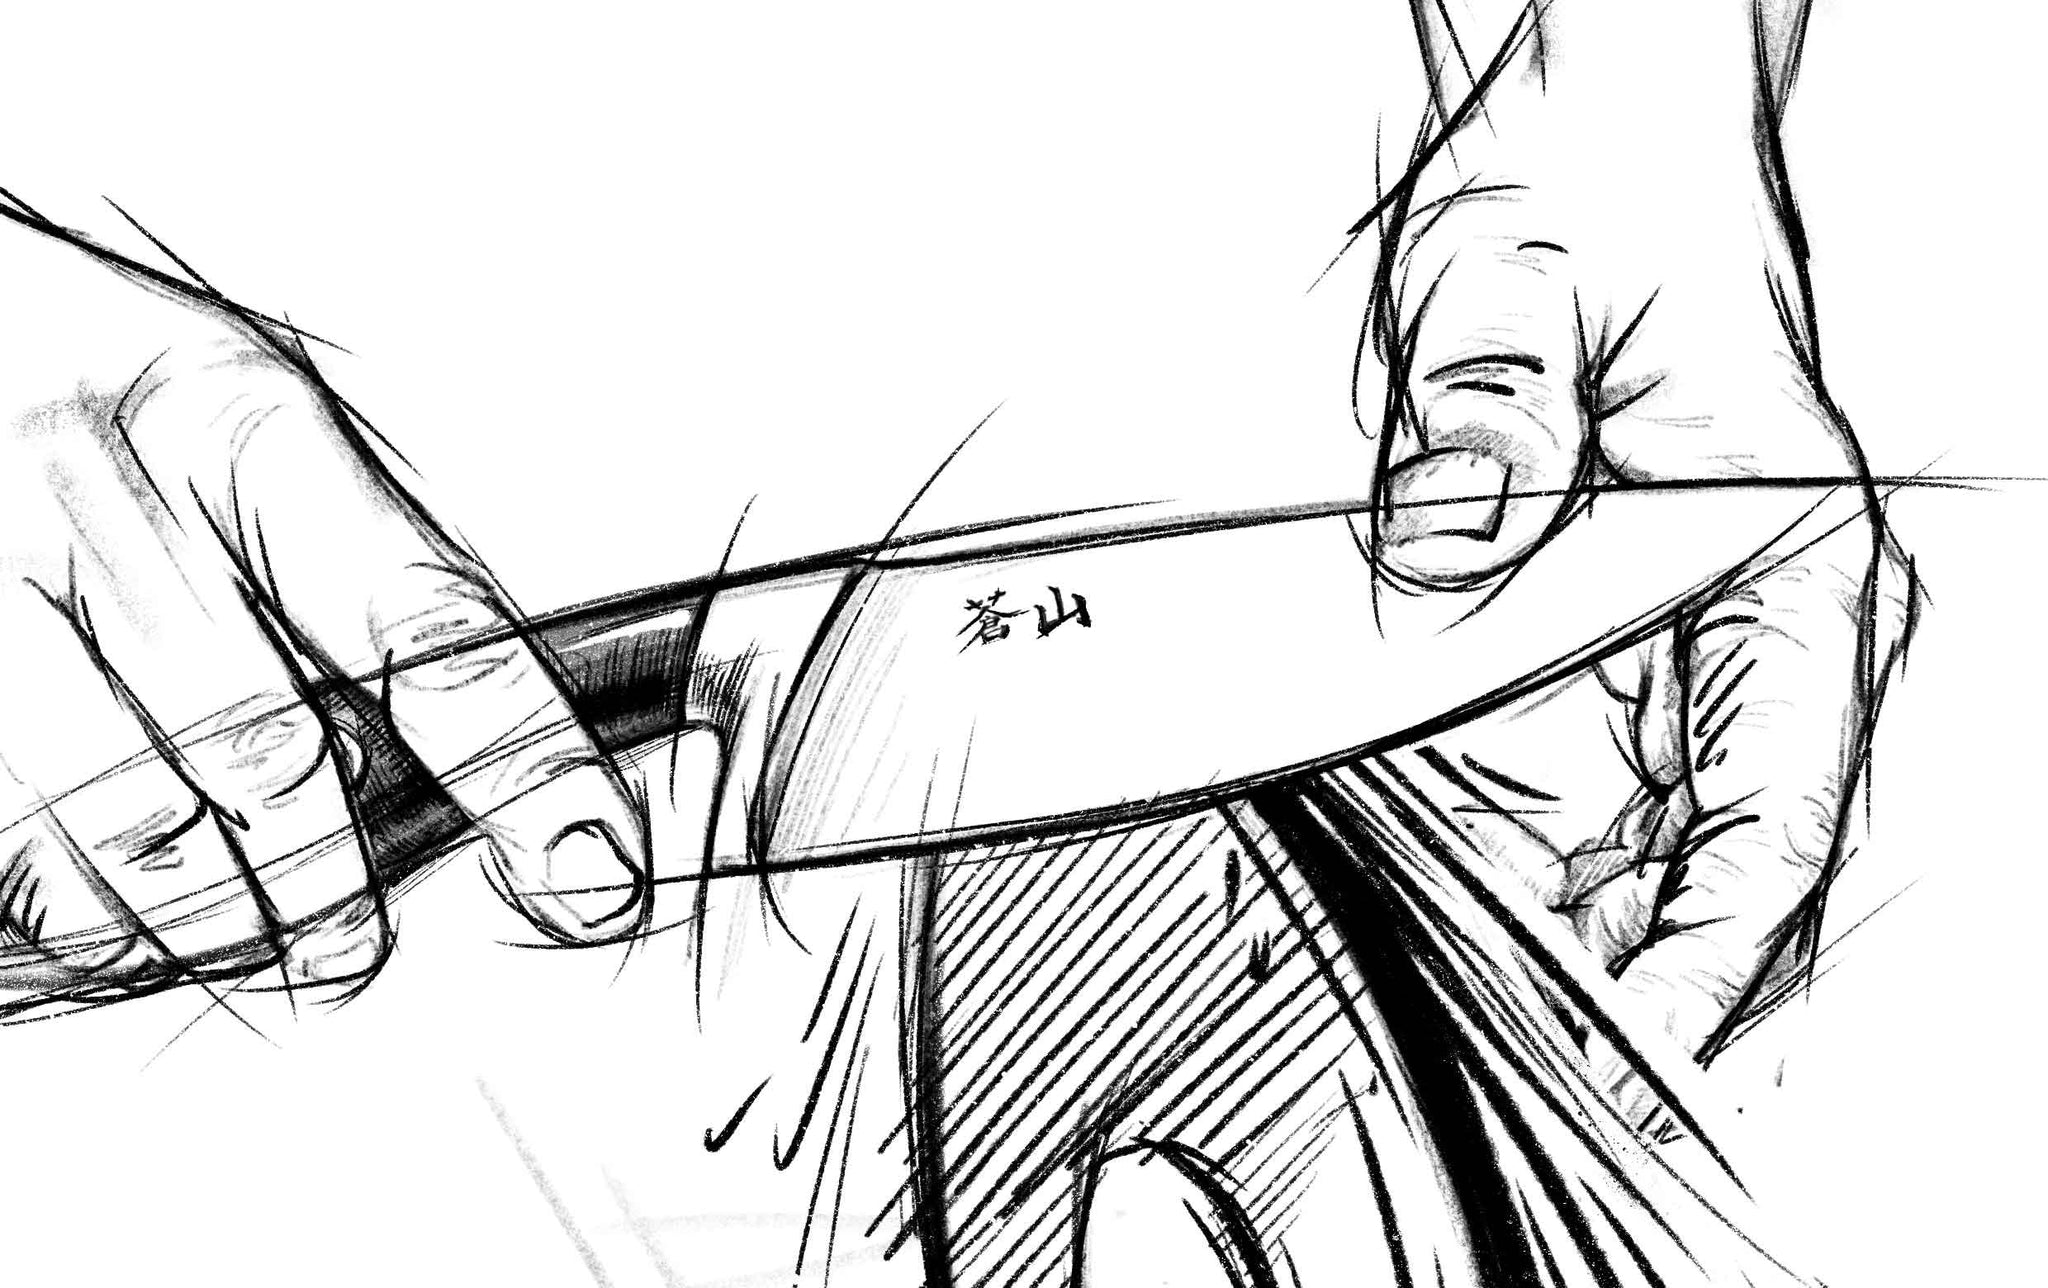 A sketch of a knife being hand sharpened on a sharpening wheel.